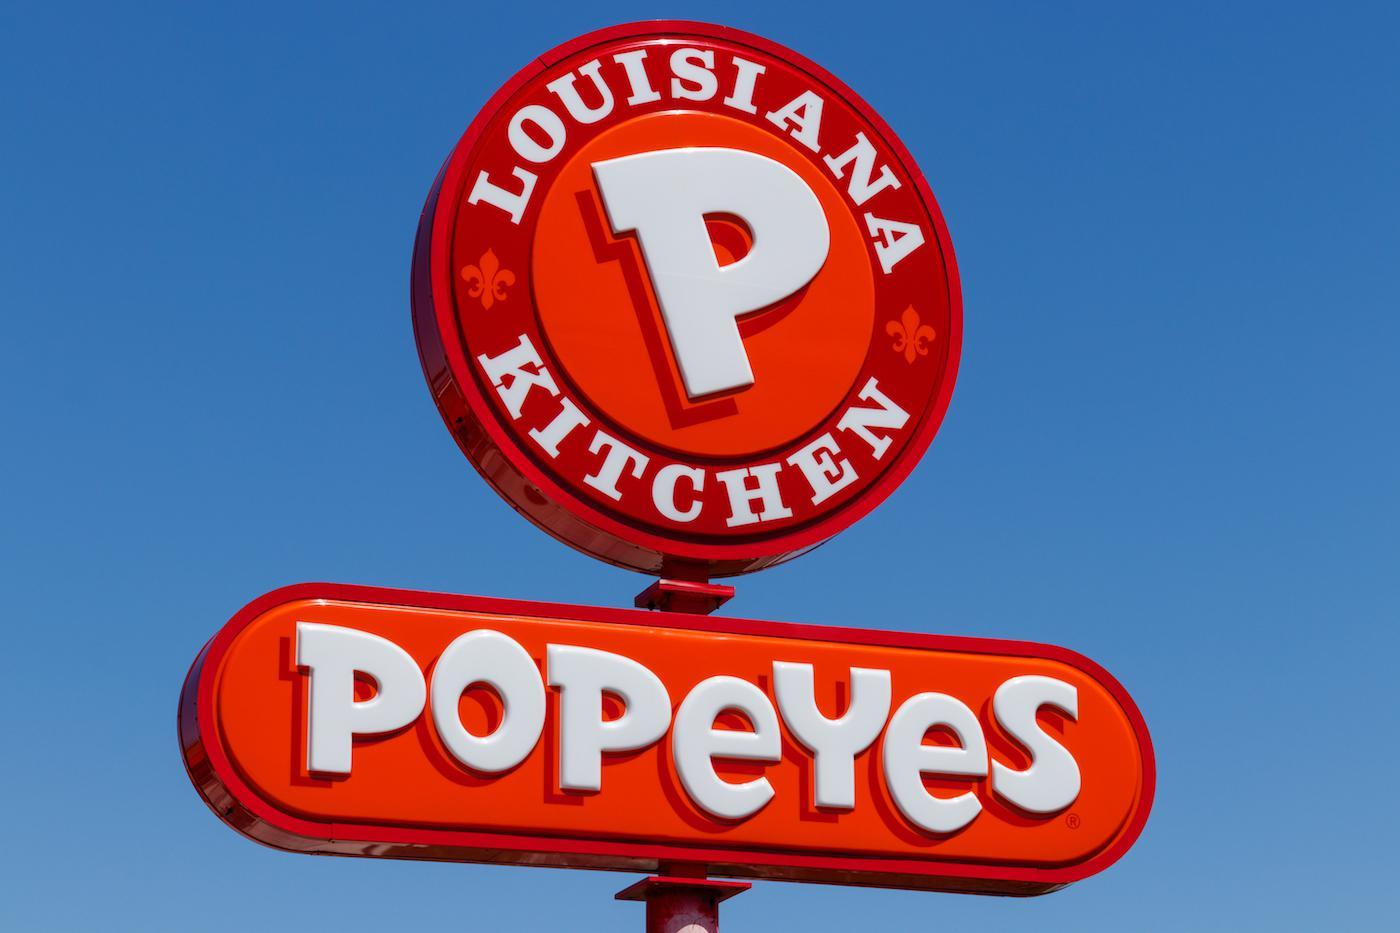 Now You Can Pre Order Popeyes Cajun Style Turkeys For Thanksgiving